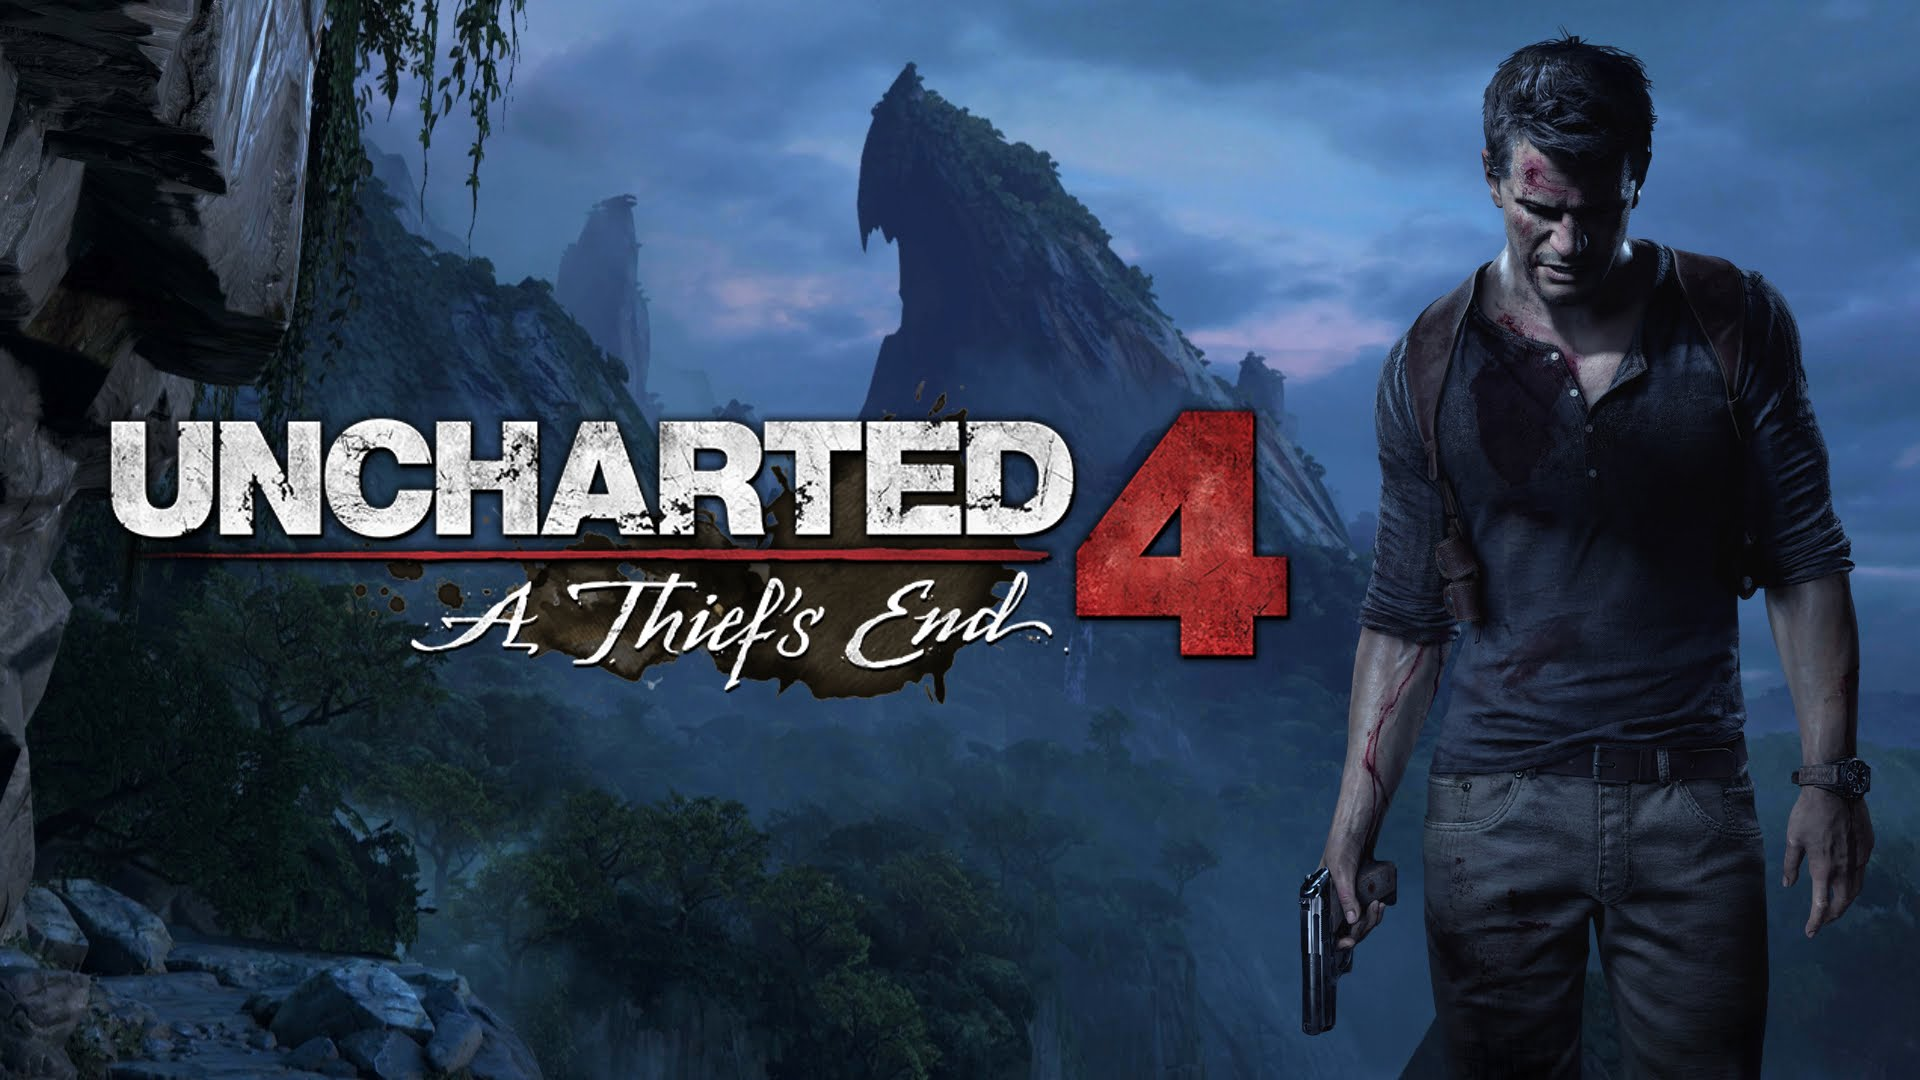 Naughty Dog apologizes for Ubisoft art in Uncharted 4 trailer